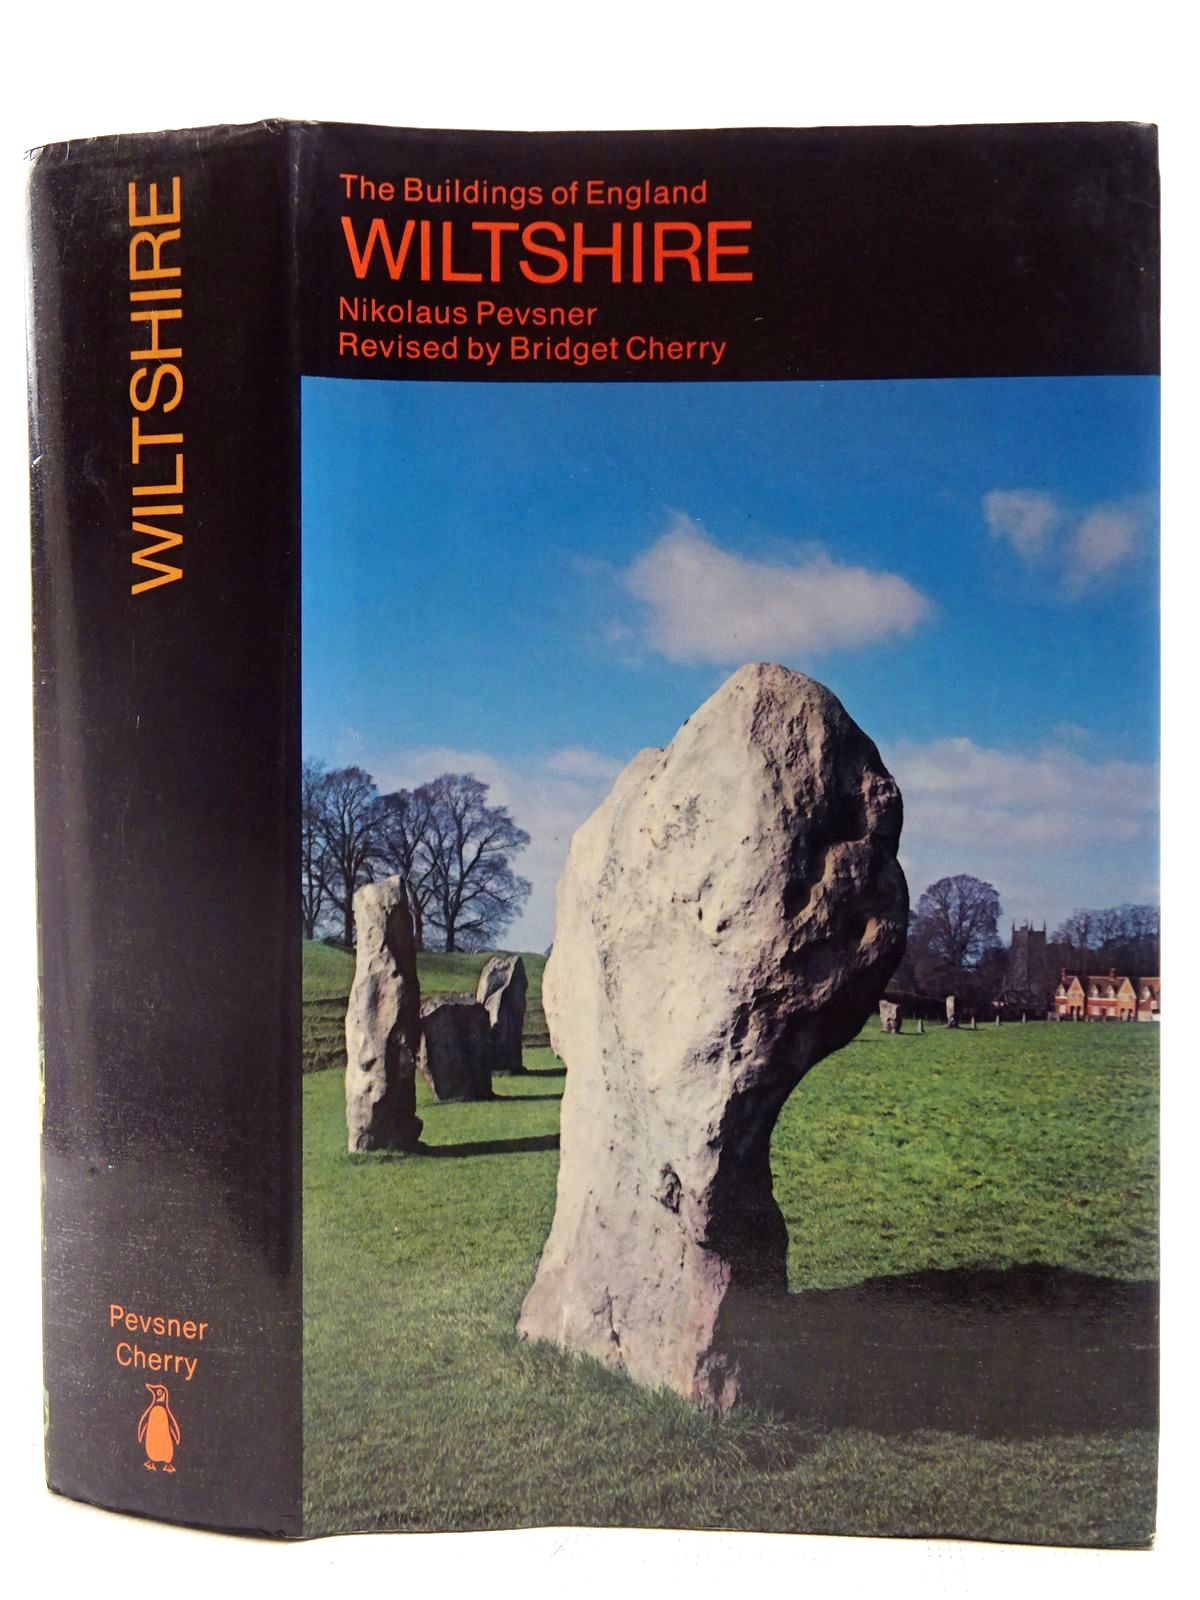 Photo of WILTSHIRE (BUILDINGS OF ENGLAND) written by Pevsner, Nikolaus<br />Cherry, Bridget published by Penguin (STOCK CODE: 2127669)  for sale by Stella & Rose's Books